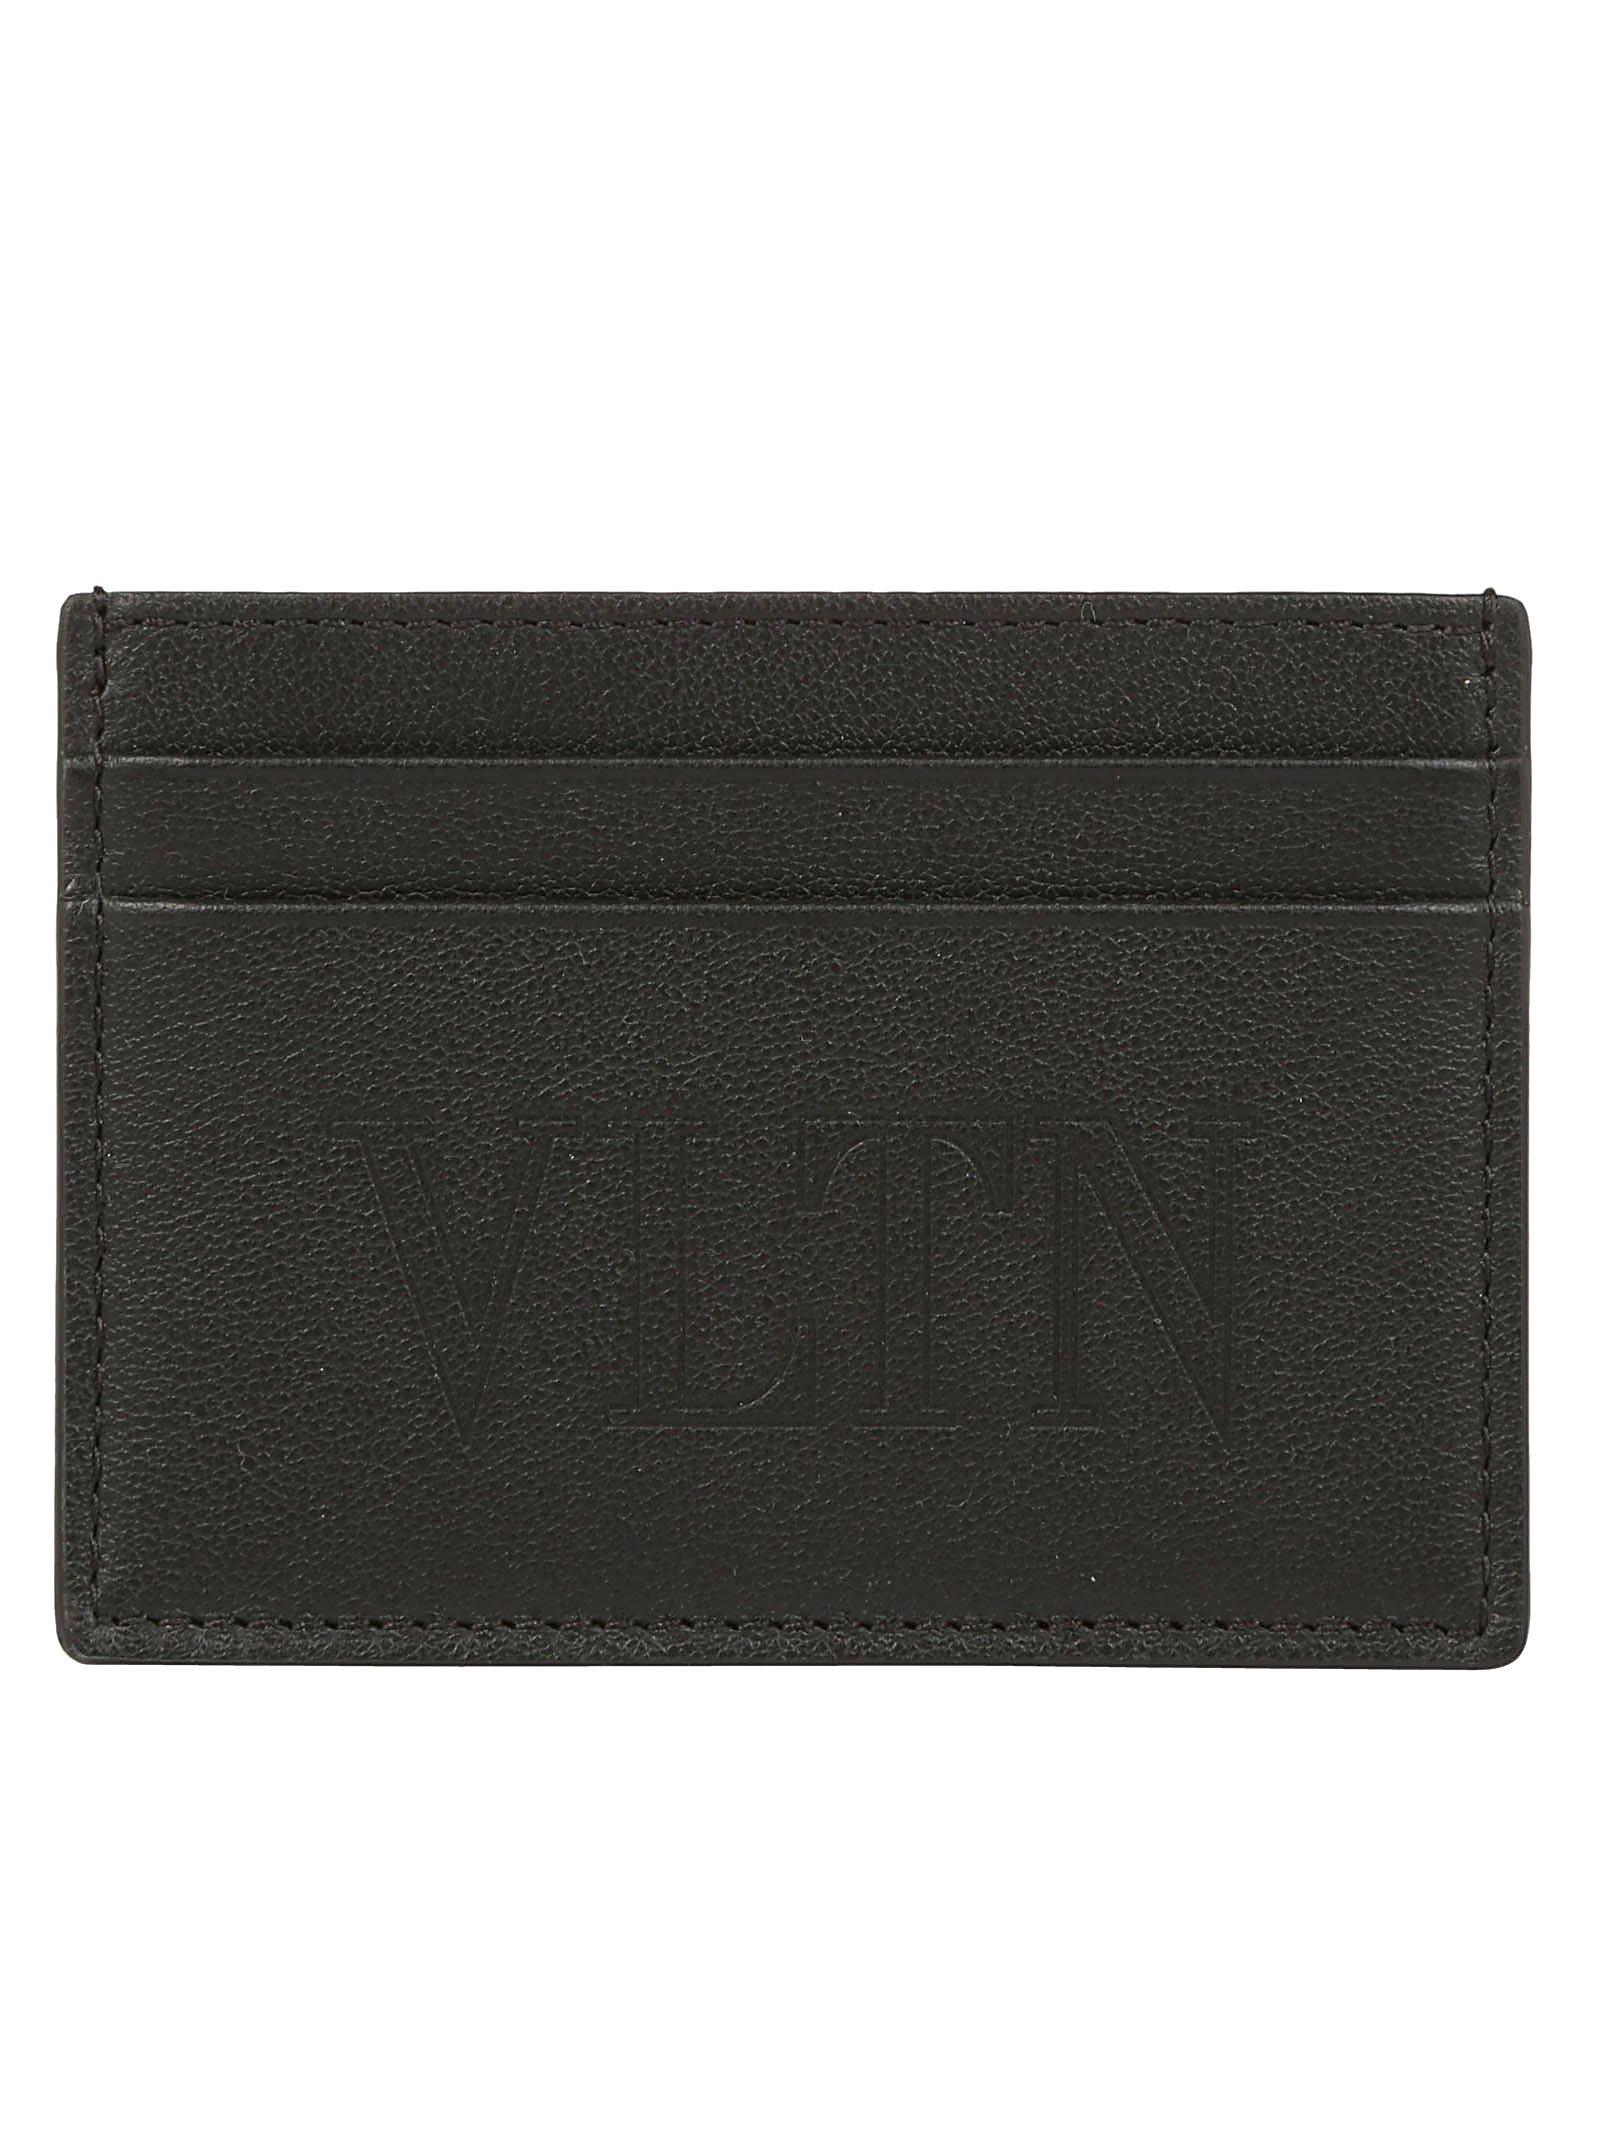 90274b41b6161 Lyst - Valentino Garavani Small Card Holder in Black for Men